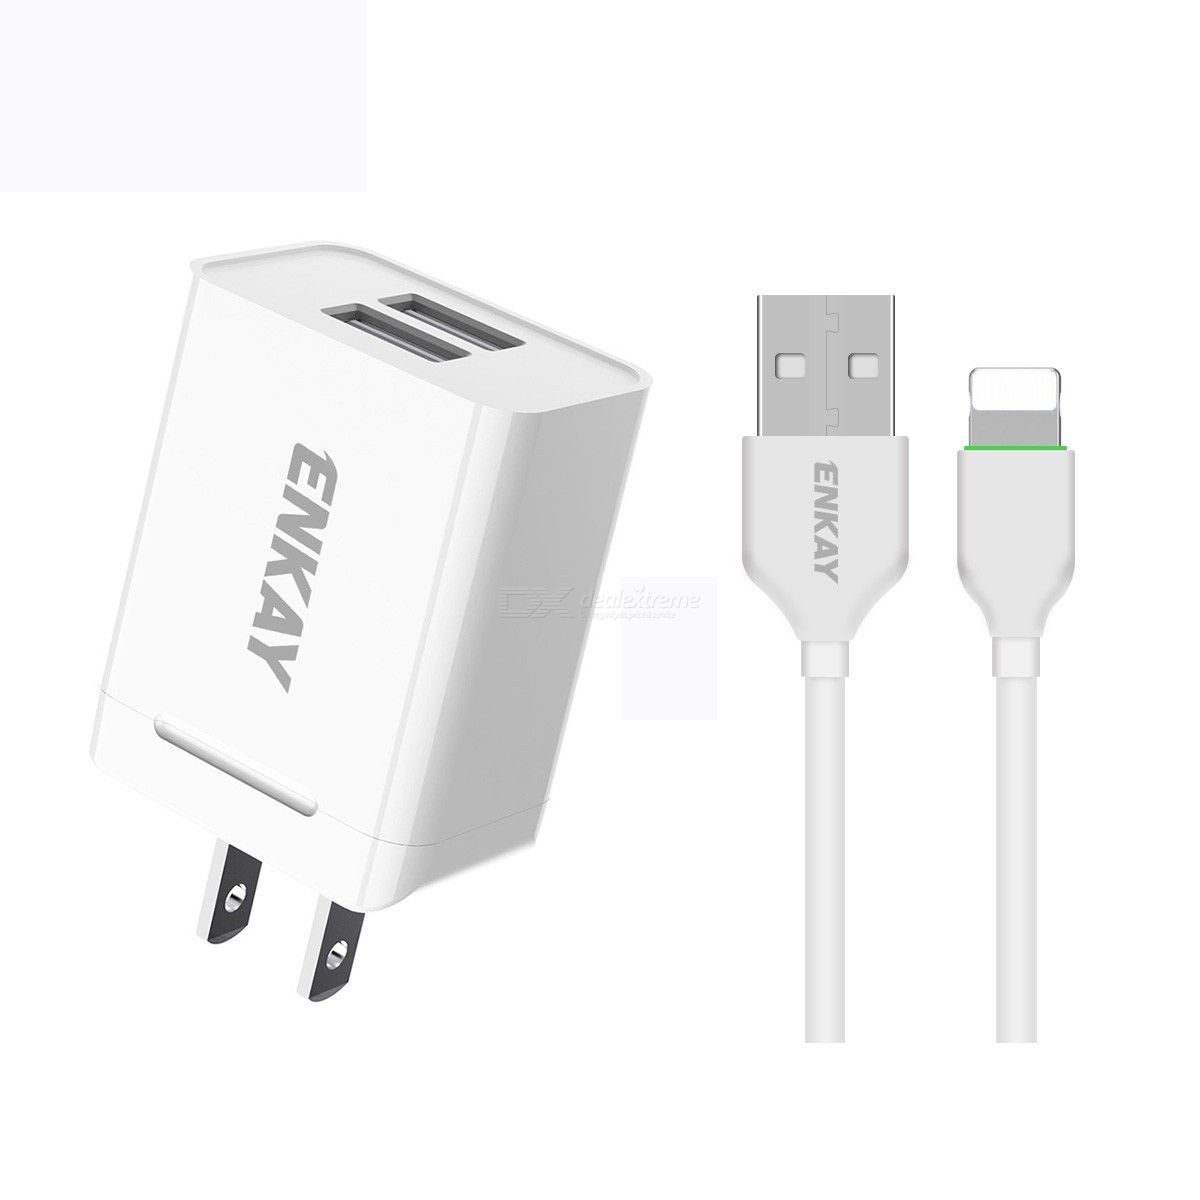 Hat-prince enkay 10.5w 2.1a adaptive charging us plug dual usb travel power adapter with 8 pin cable